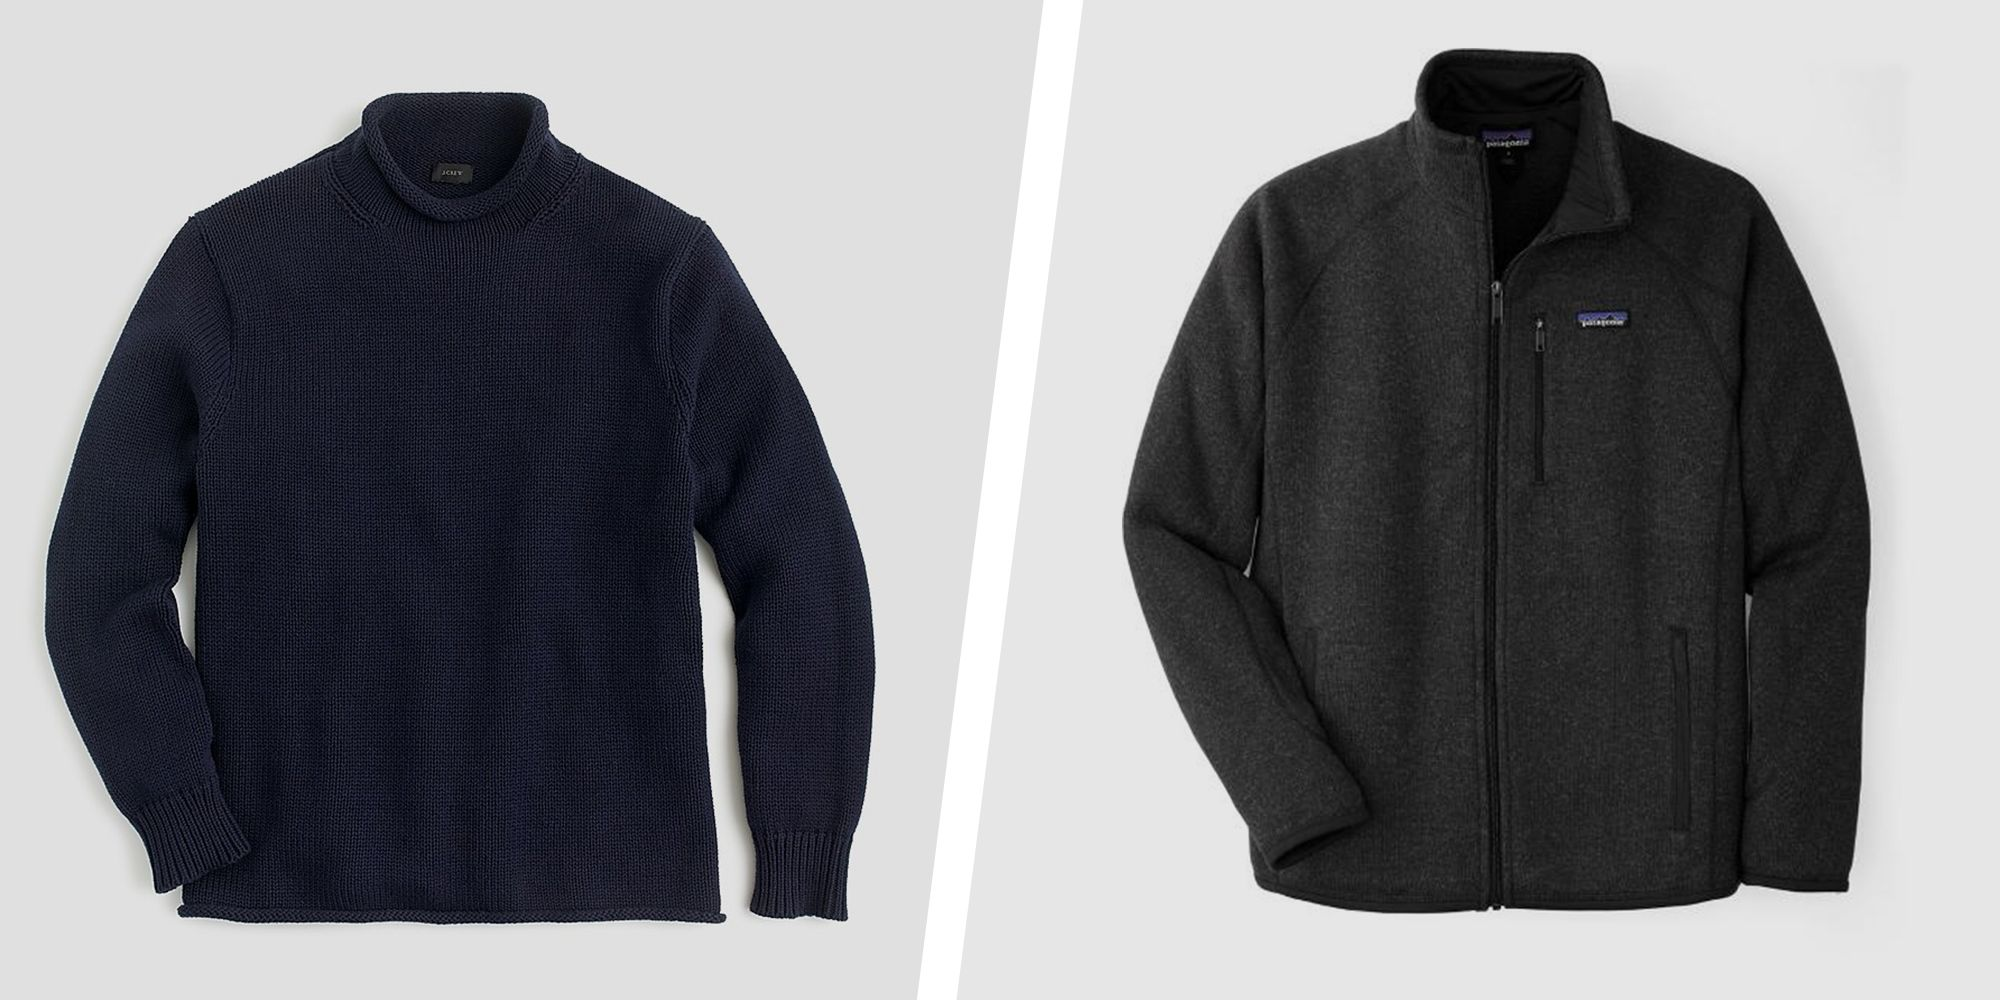 The 10 Best Winter Sweaters for Men to Score Now